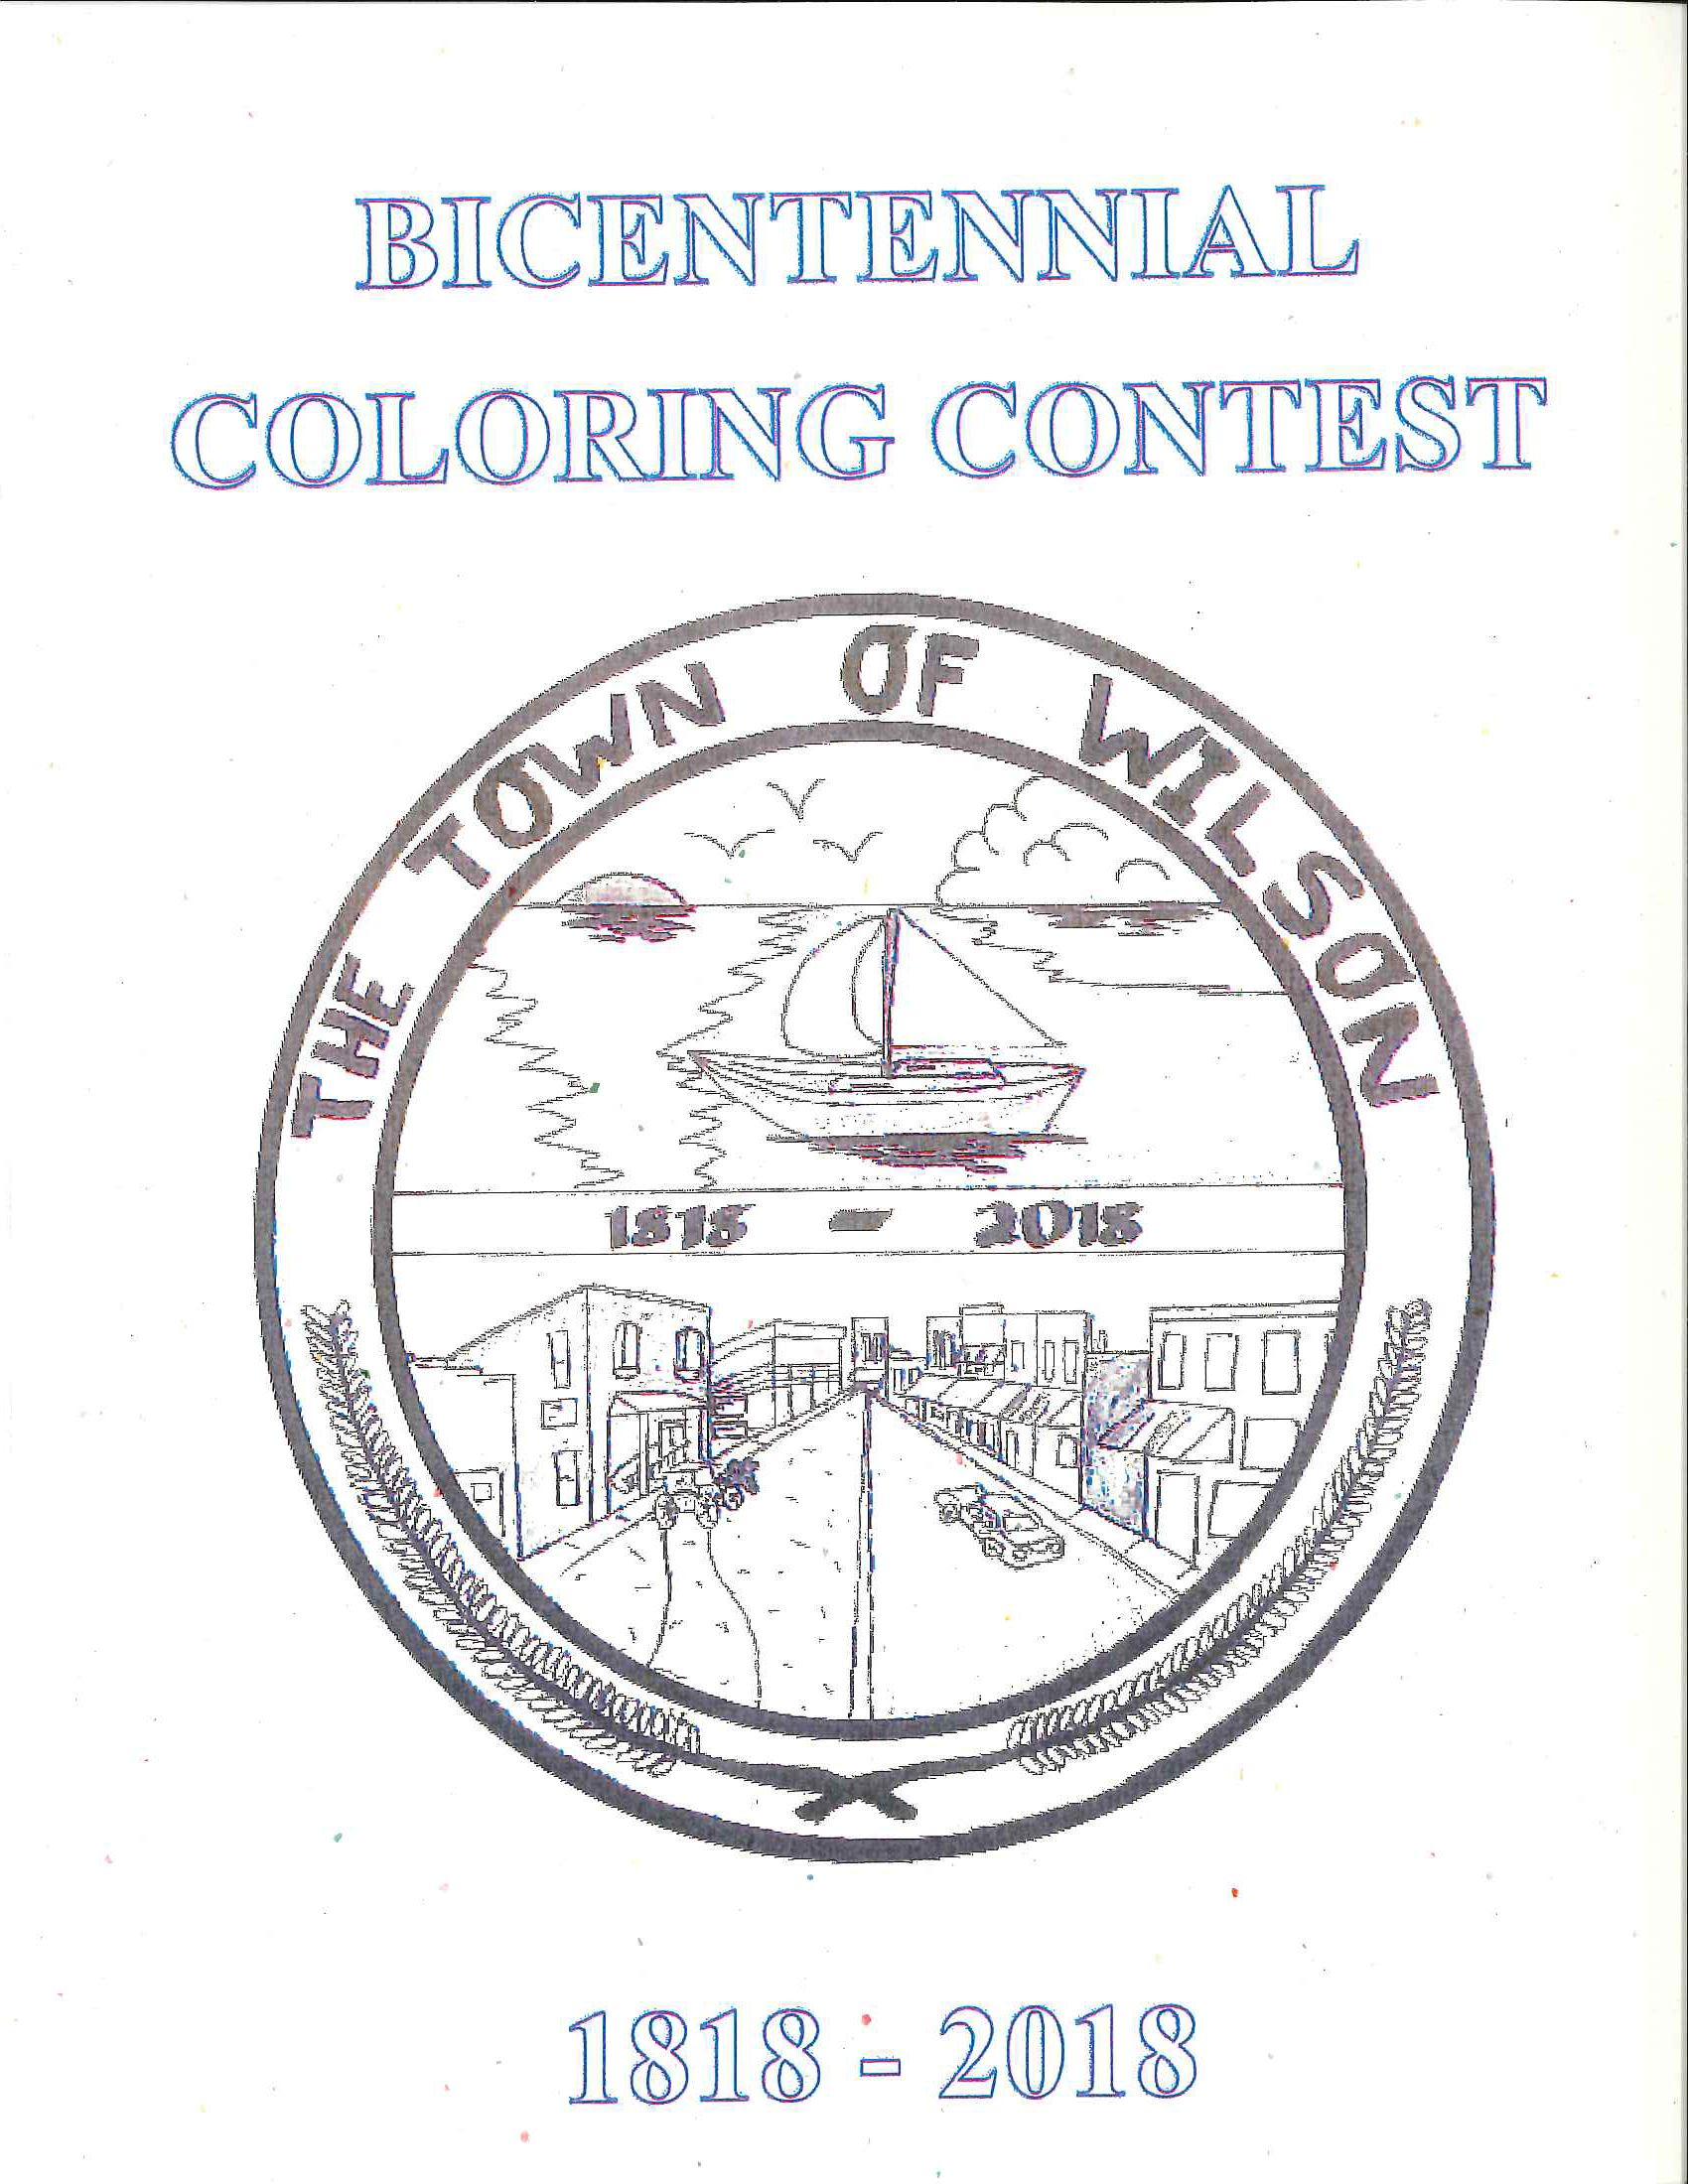 Bicentennial Coloring Contest